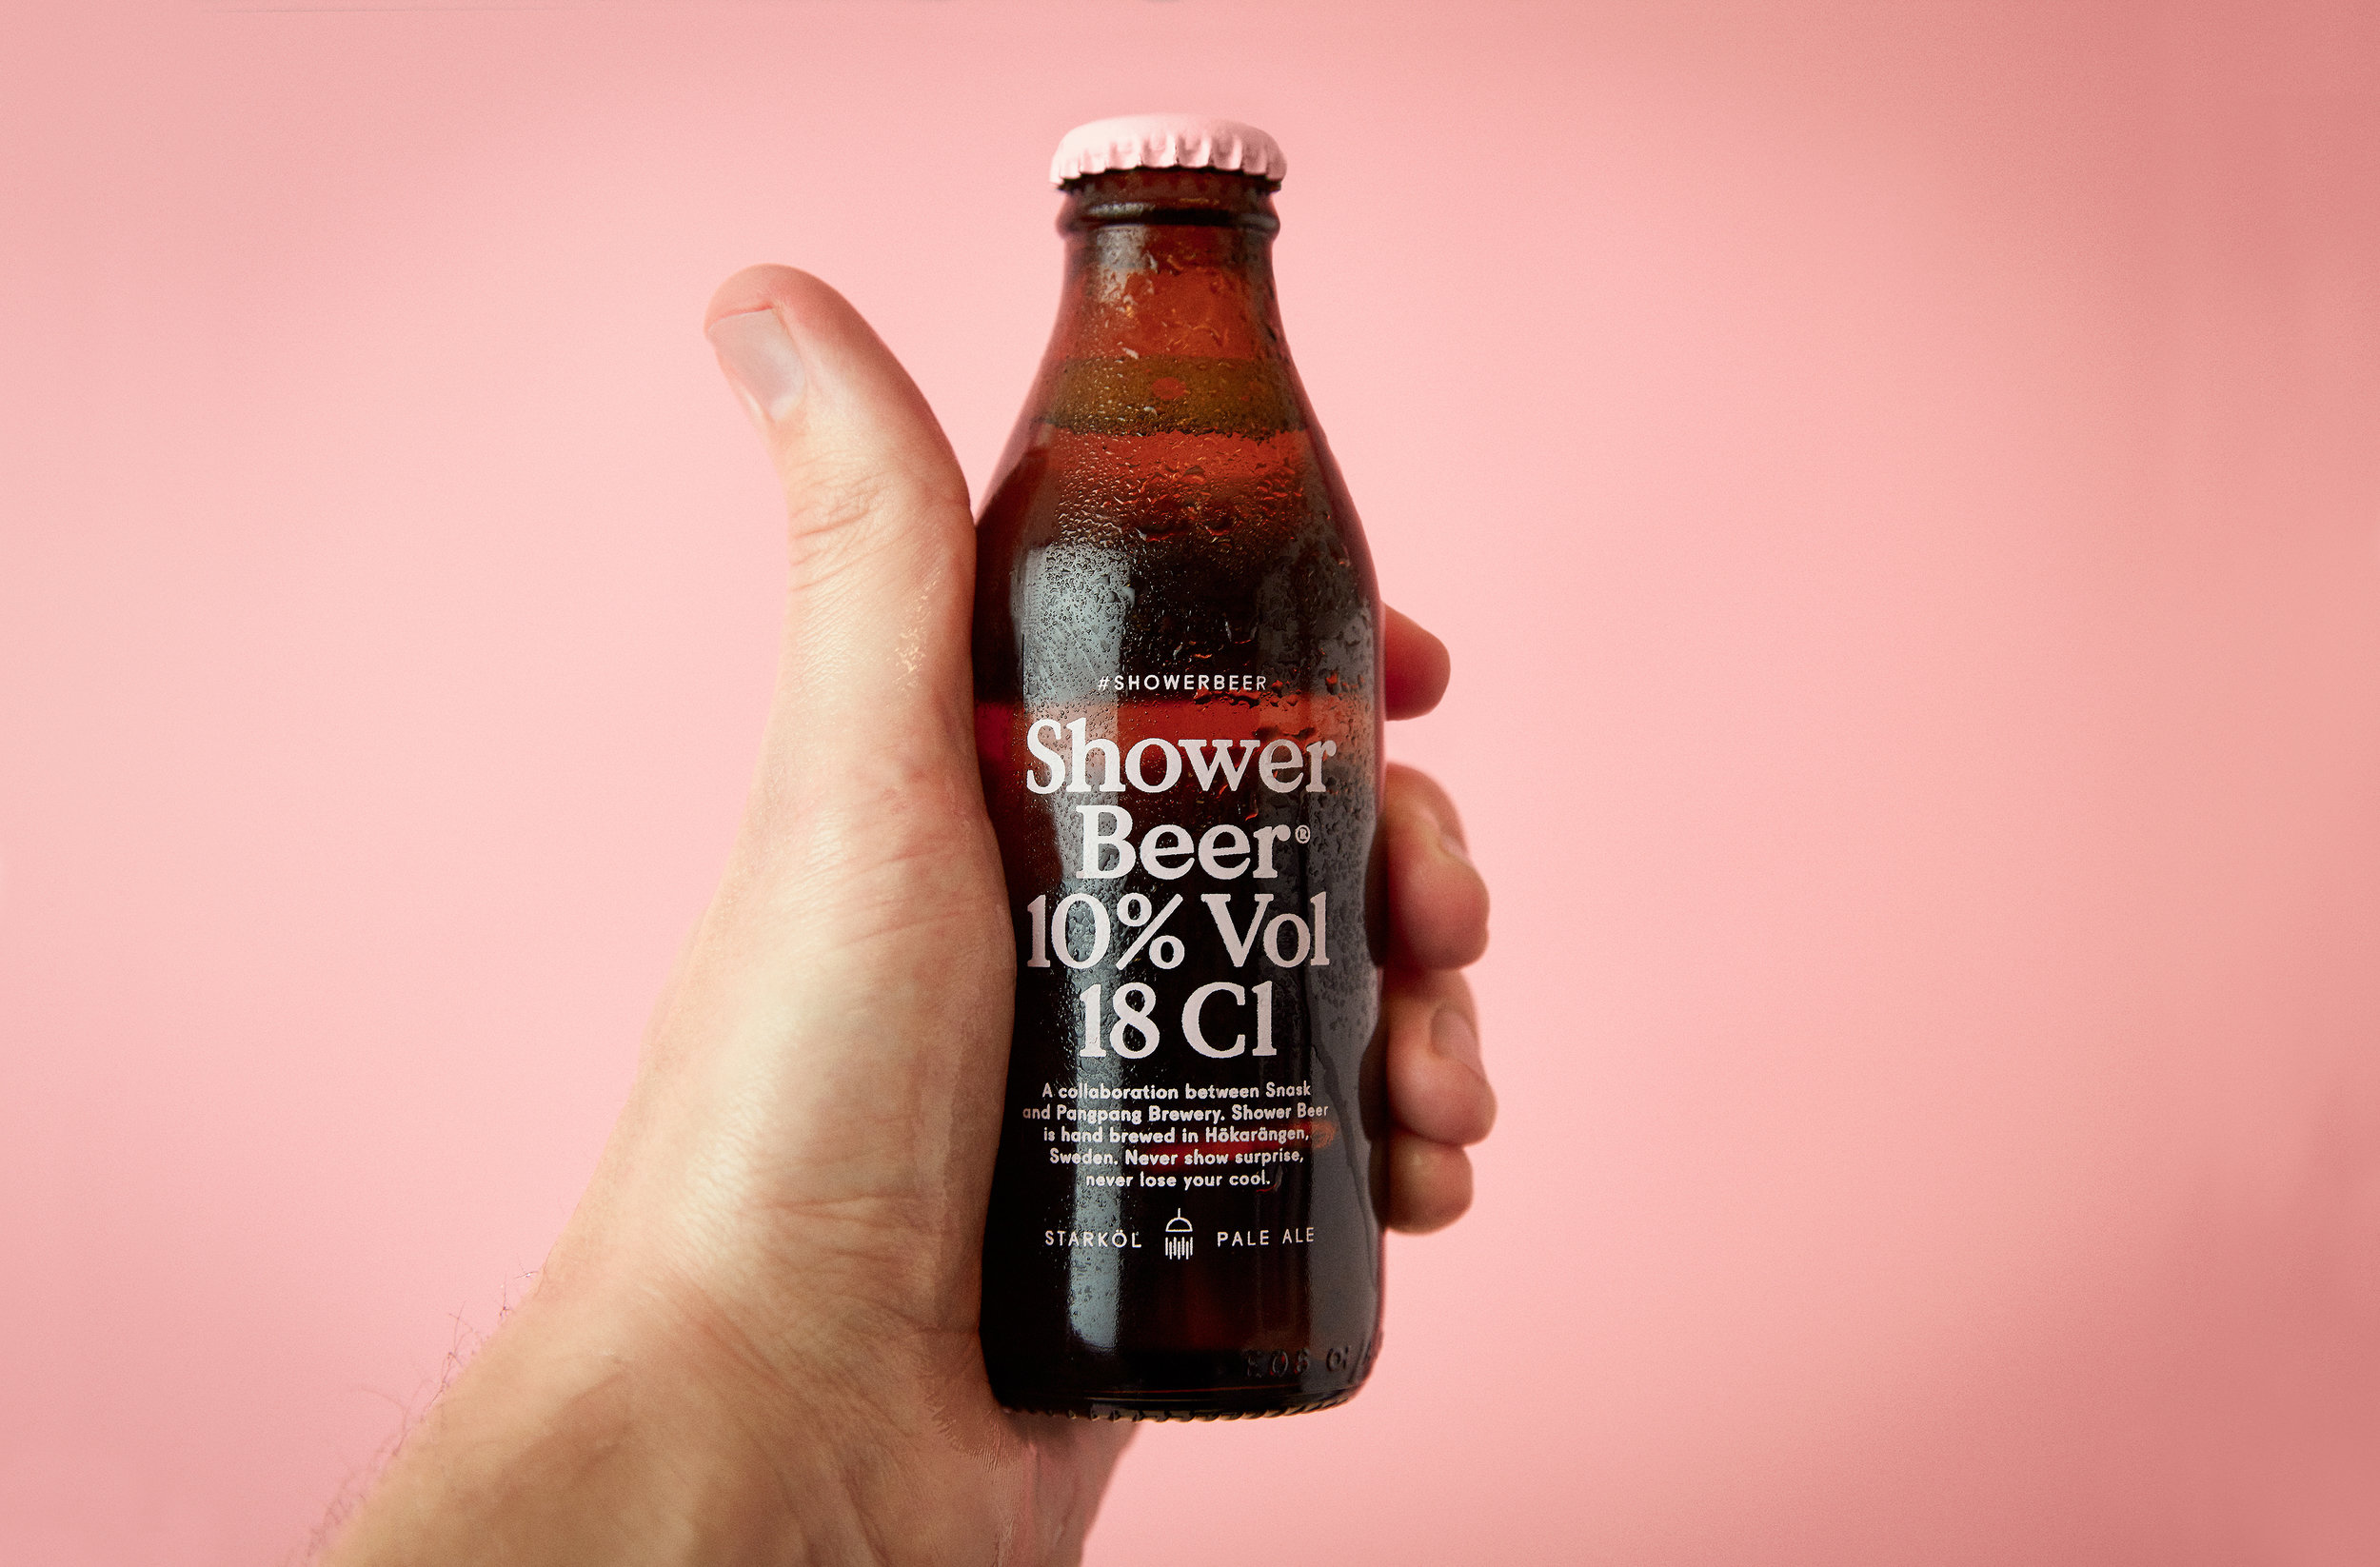 shower-beer_00_bottle_hero2.jpg